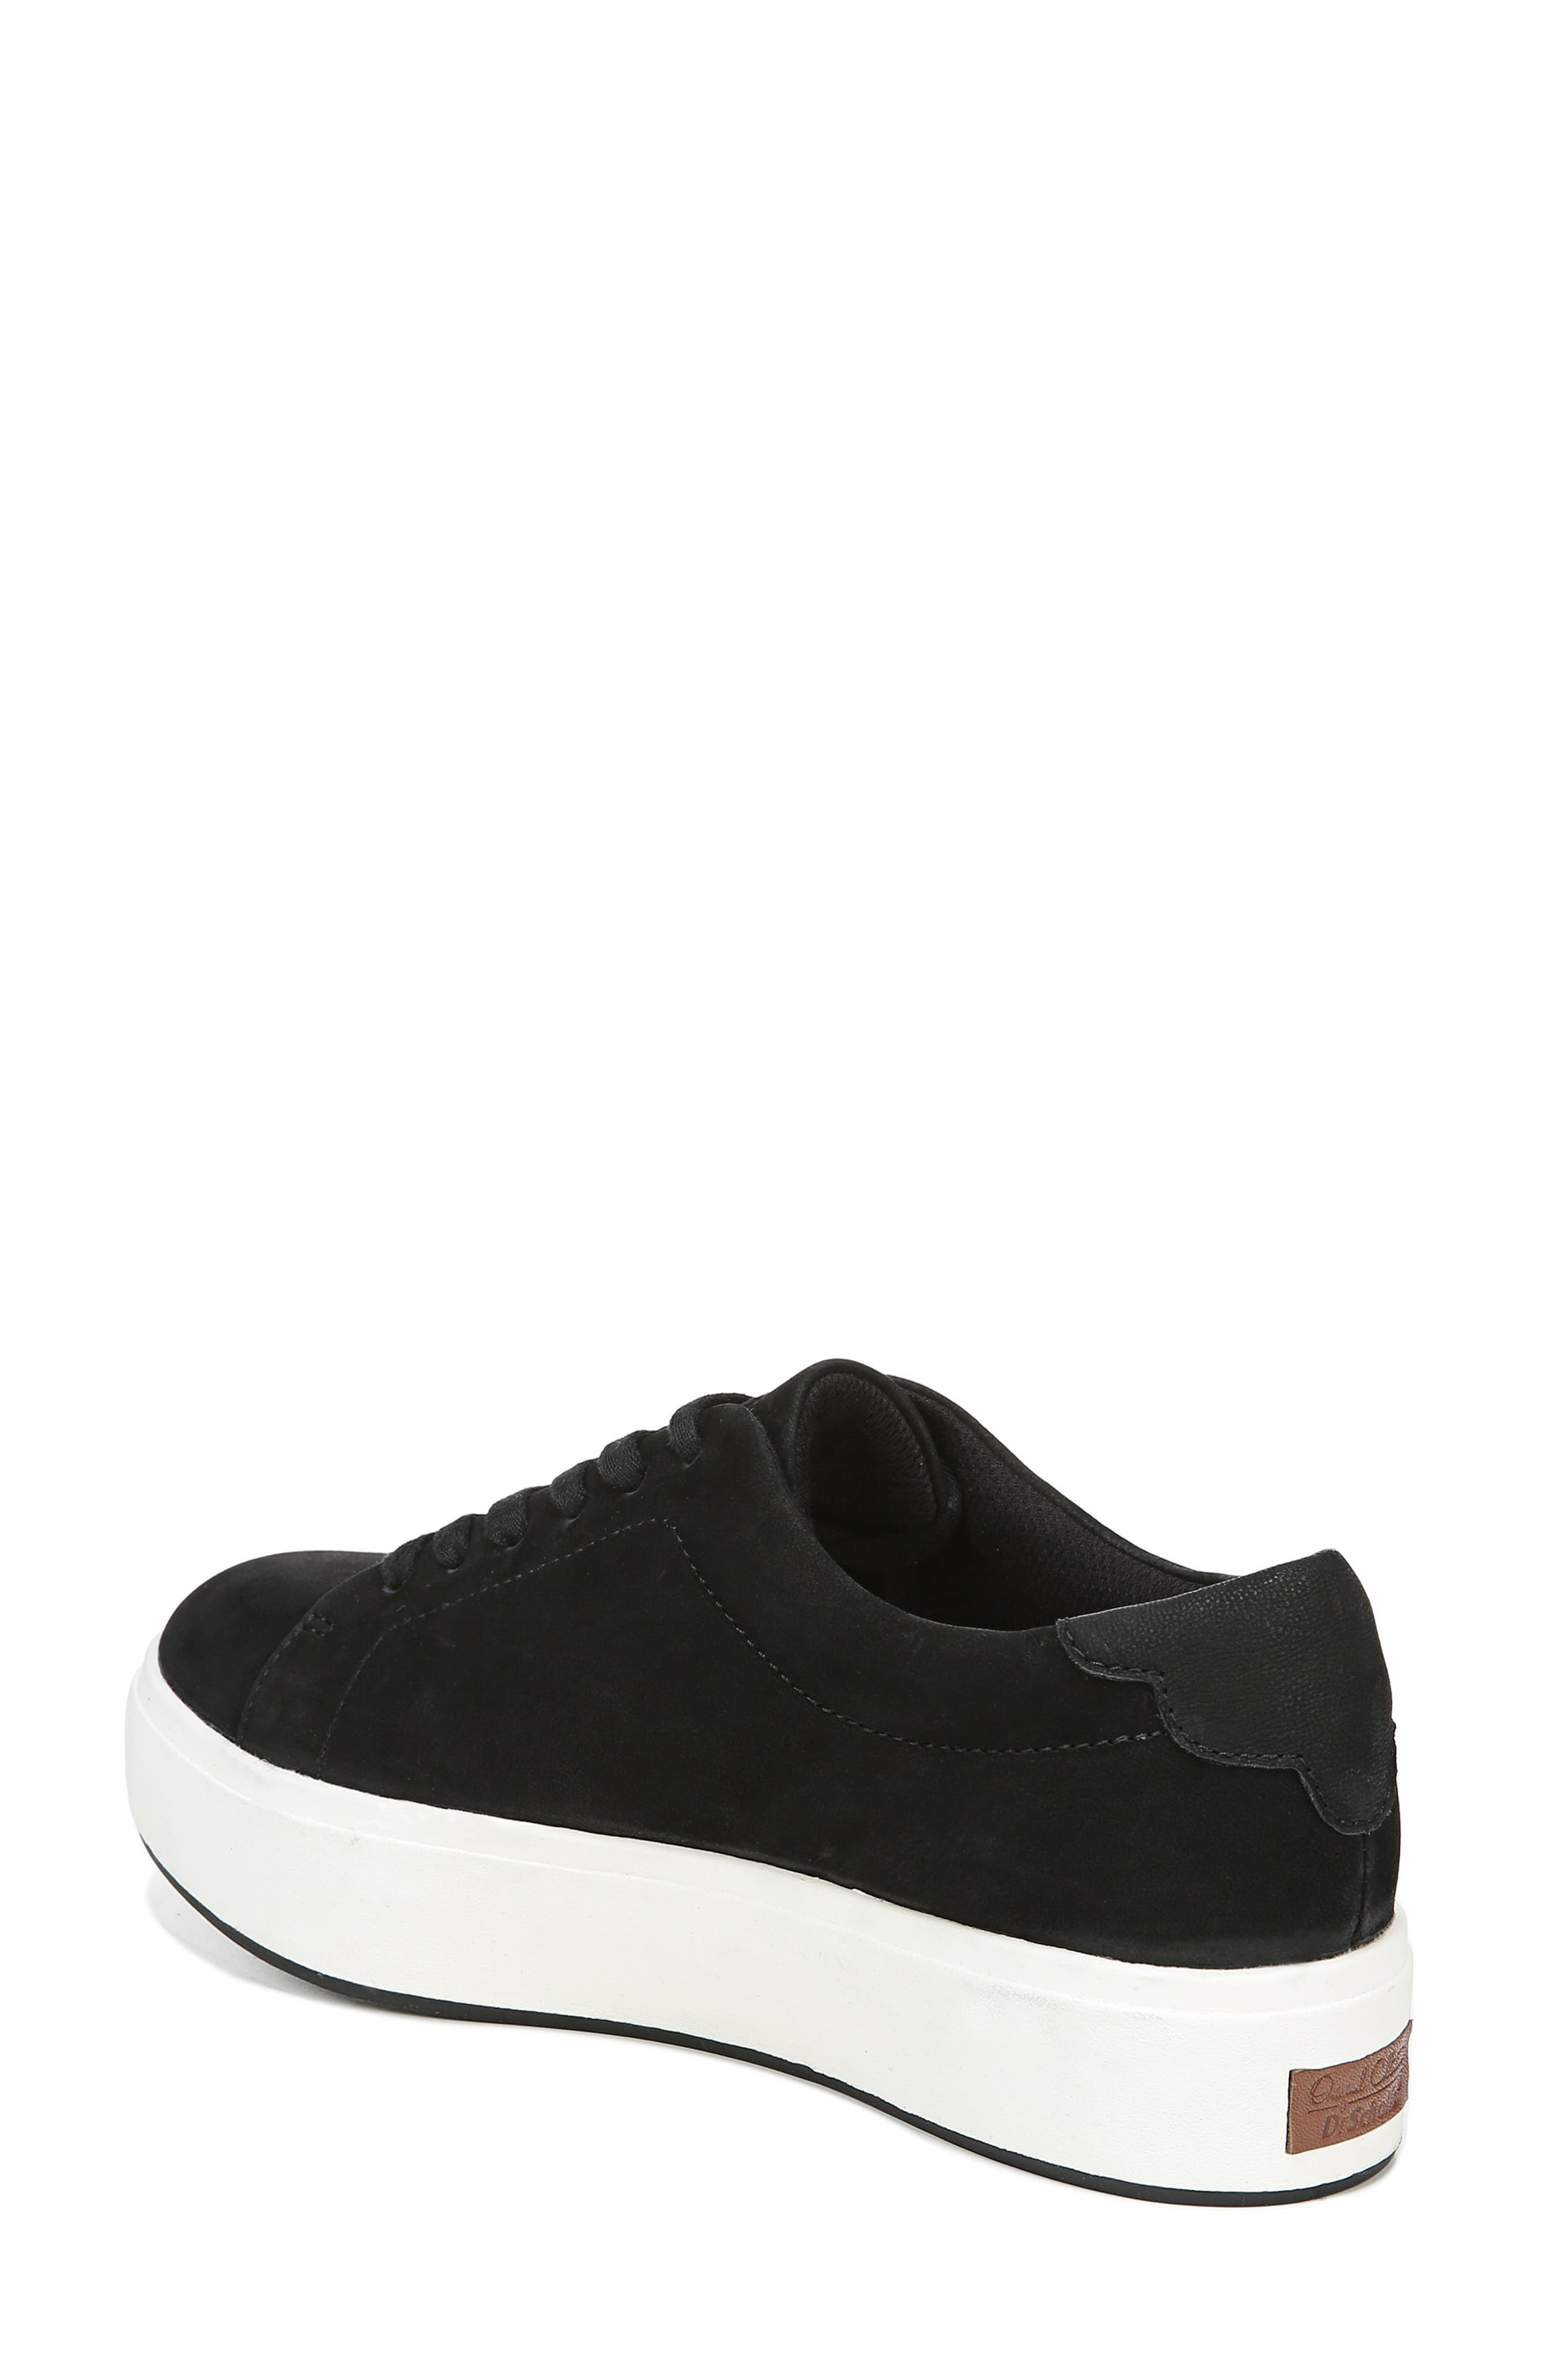 DR. SCHOLL'S, Abbot Luxe Platform Sneaker, Alternate thumbnail 2, color, BLACK SUEDE